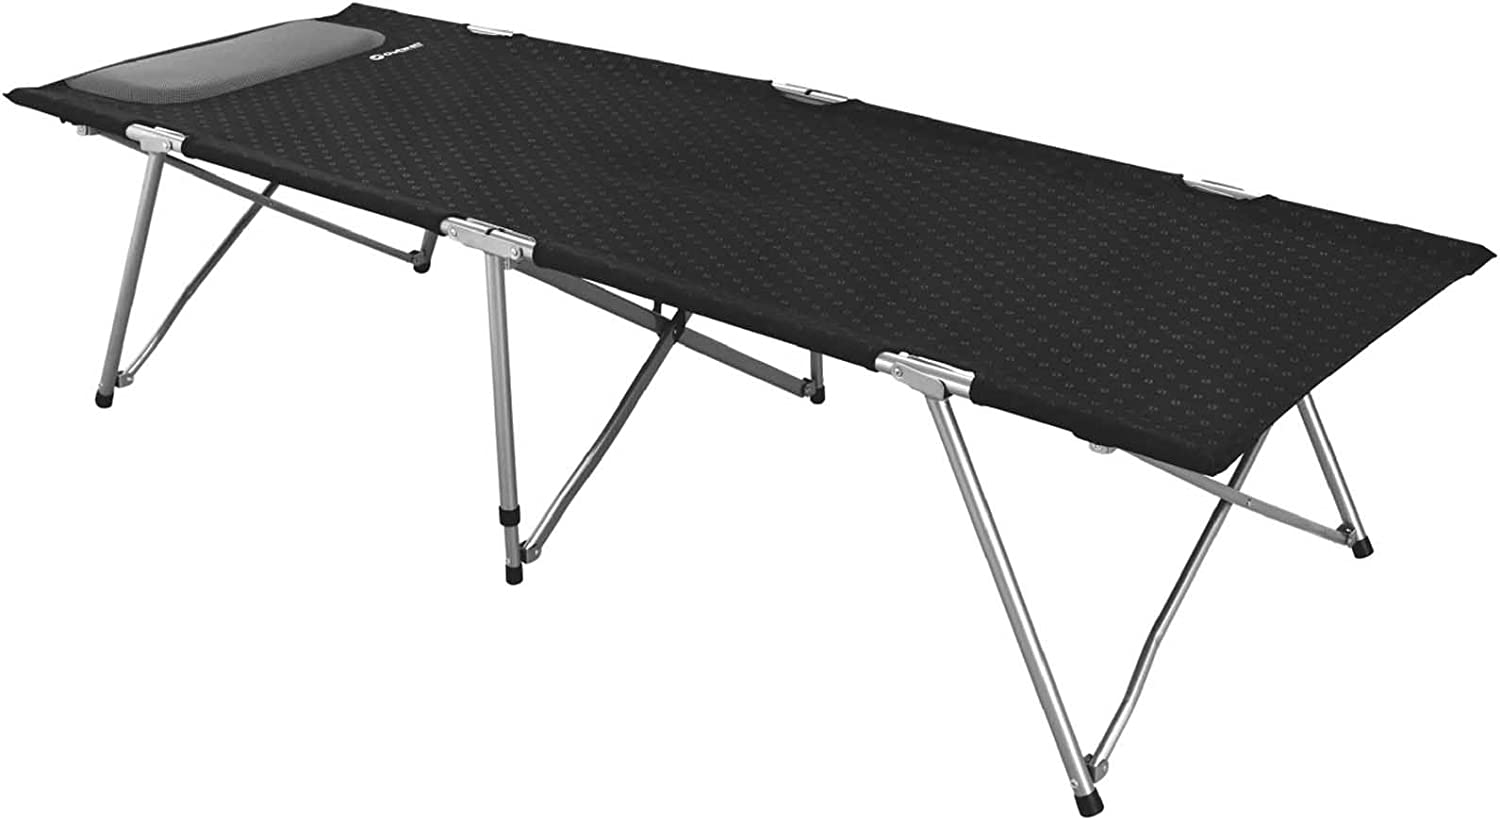 Black Outwell Double Posadas Camping Bed